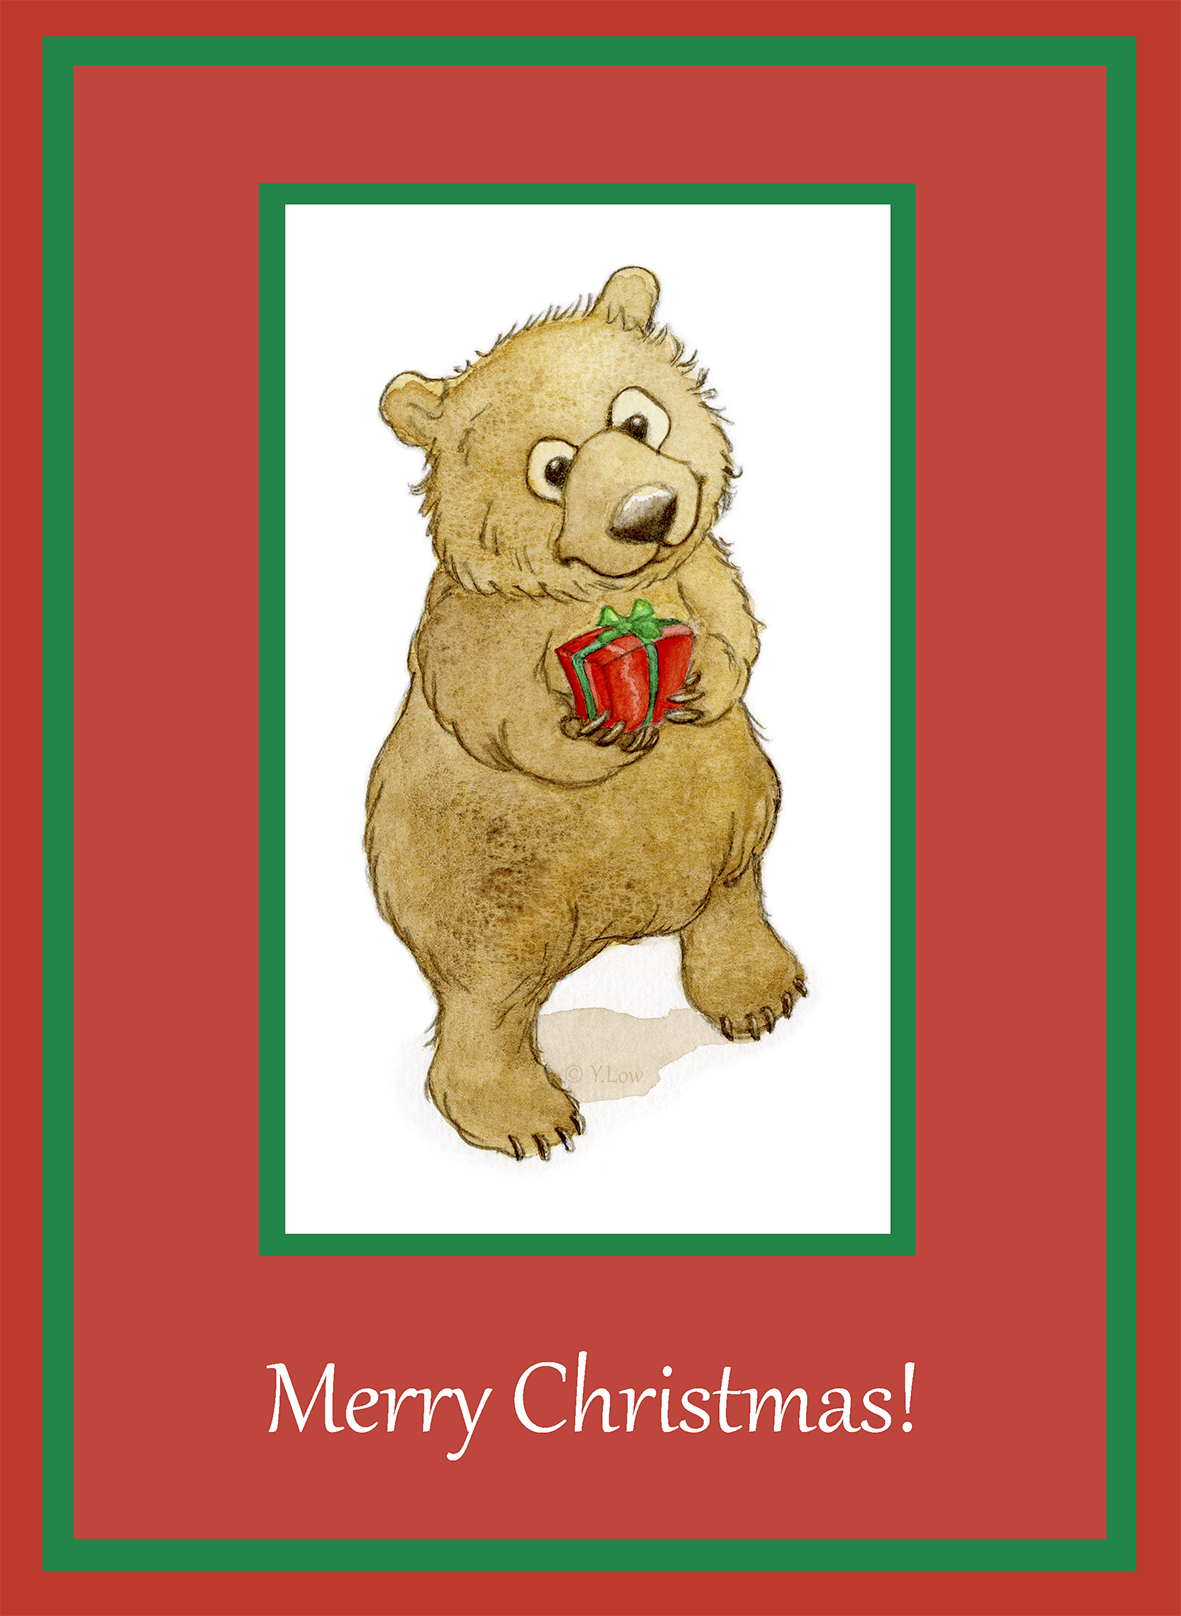 Merry Christmas Bear YLow.jpg